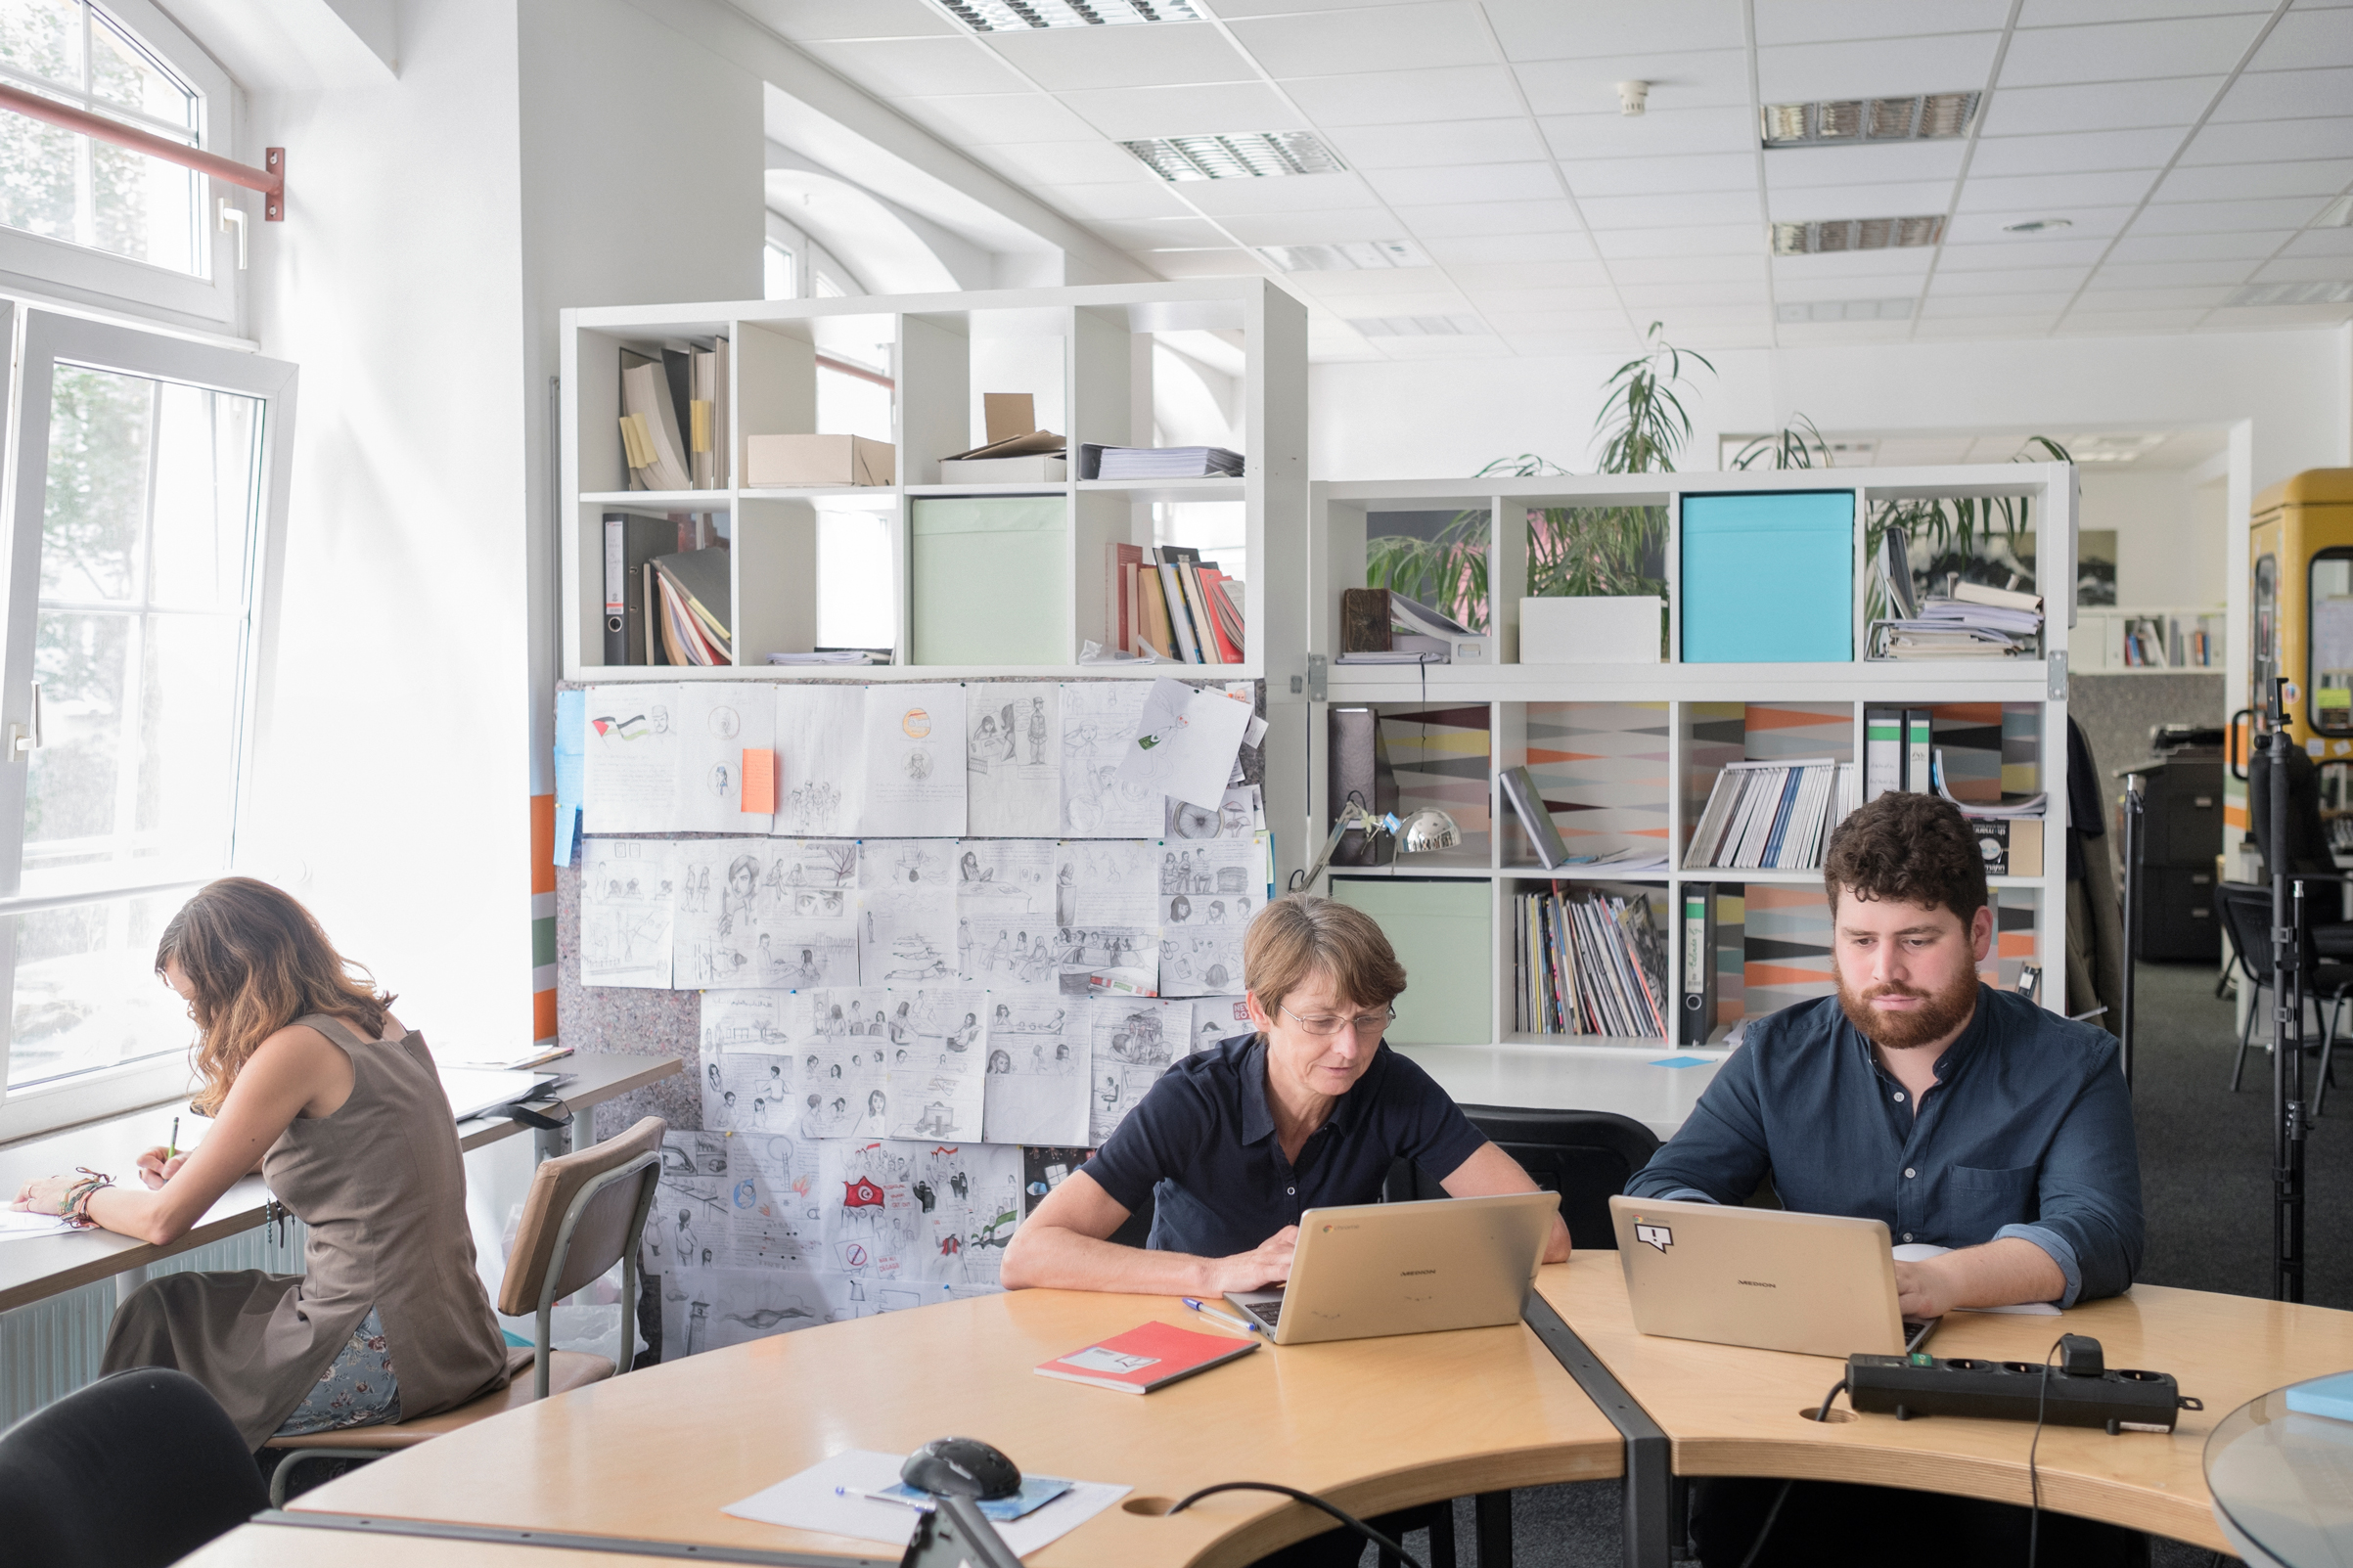 Jutta Kramm and Jacques Pezet, members of the Correctiv factchecking team, at their office in Berlin on Aug. 10.